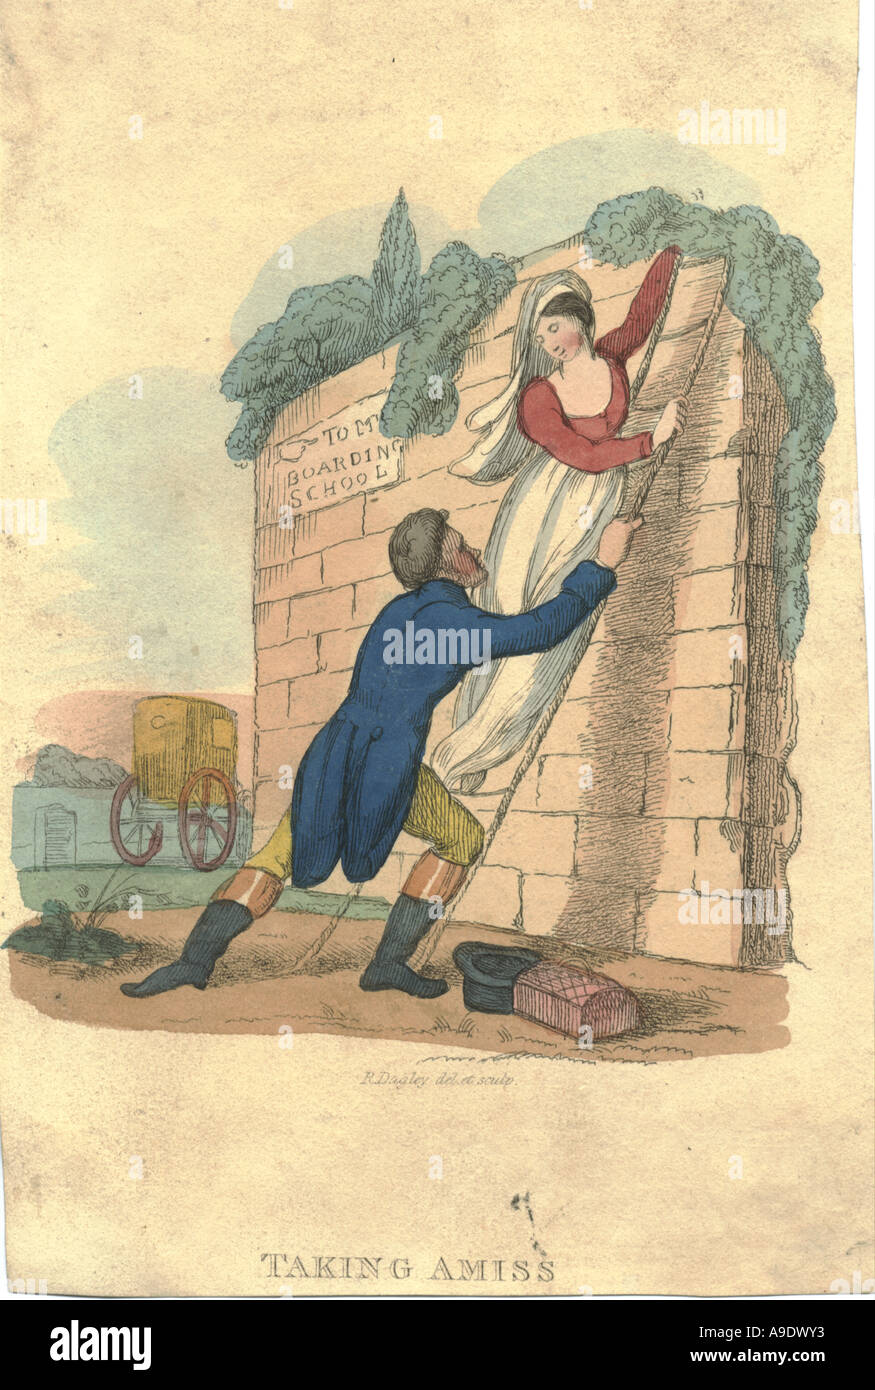 Hand coloured plate titled 'Taking amiss' circa 1825 - Stock Image